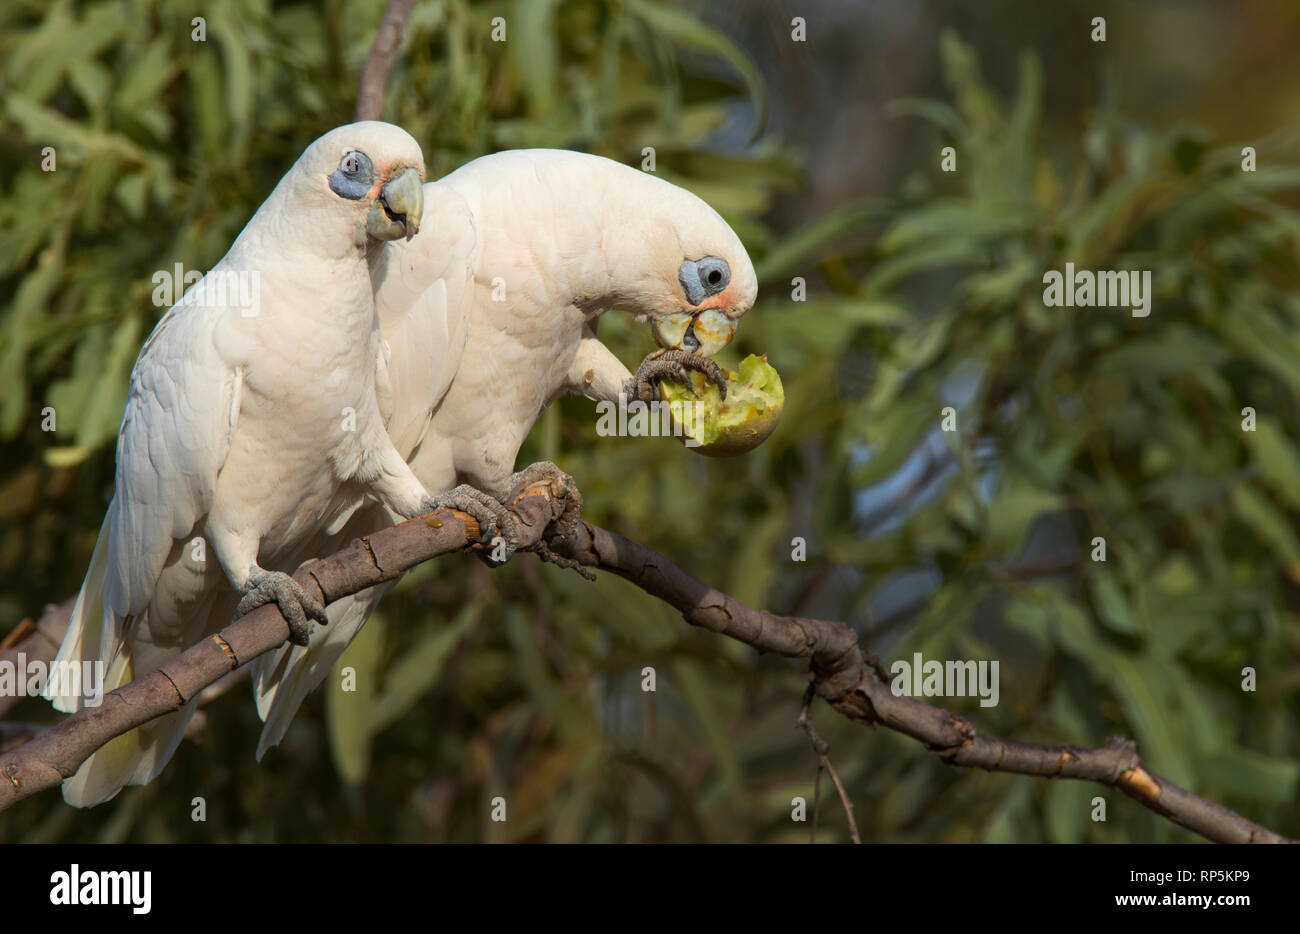 A pair of Little Corellas, Cacatua sanguinea, a type of parrot, perched in a tree with one feeding on a small melon. - Stock Image